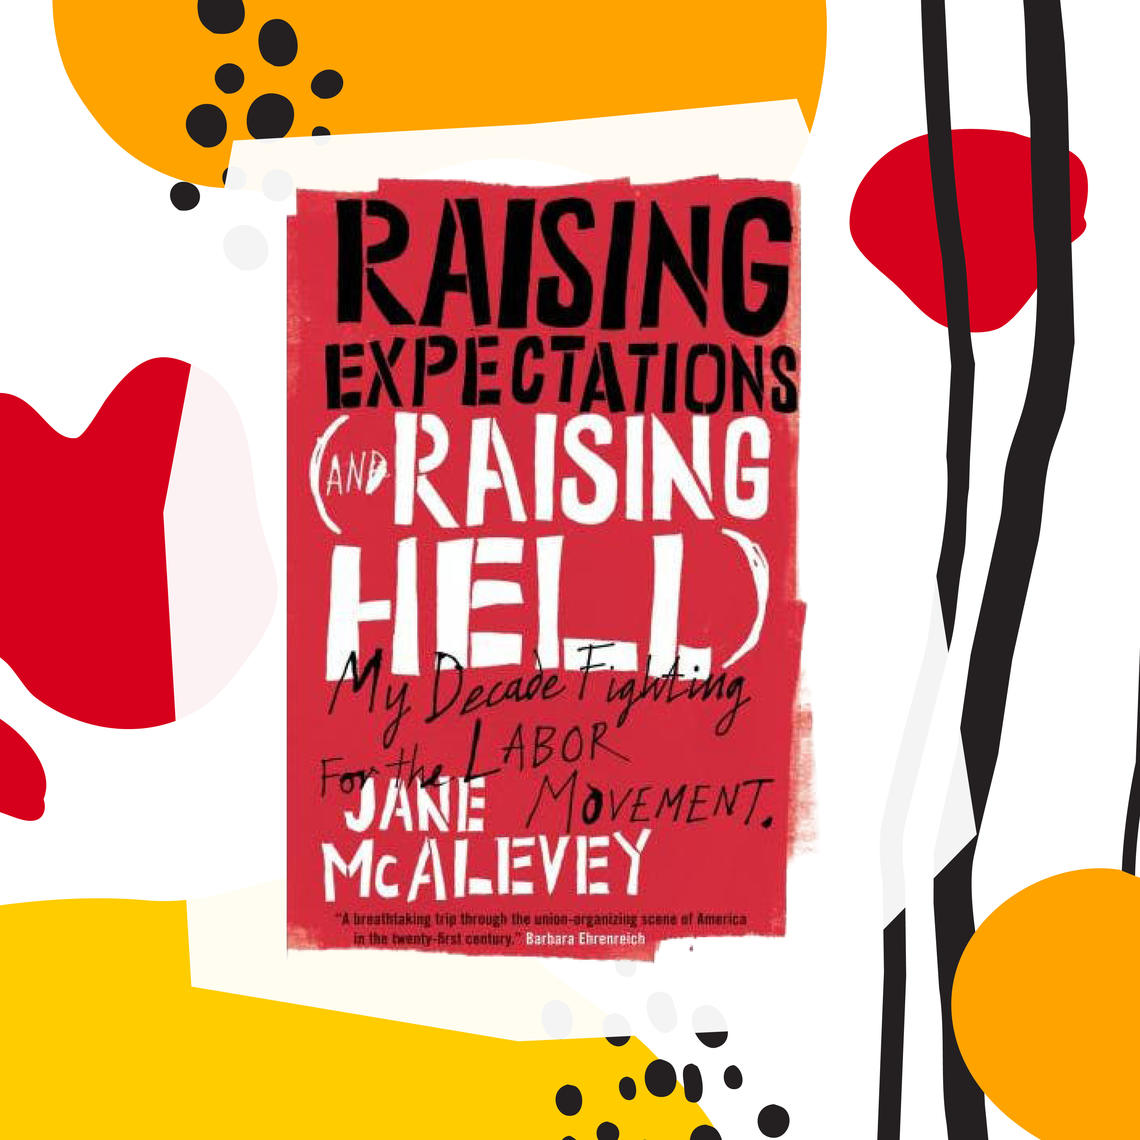 The cover of Raising Expectations (and Raising Hell): My Decade Fighting for the Labor Movement by Jane McAlevey